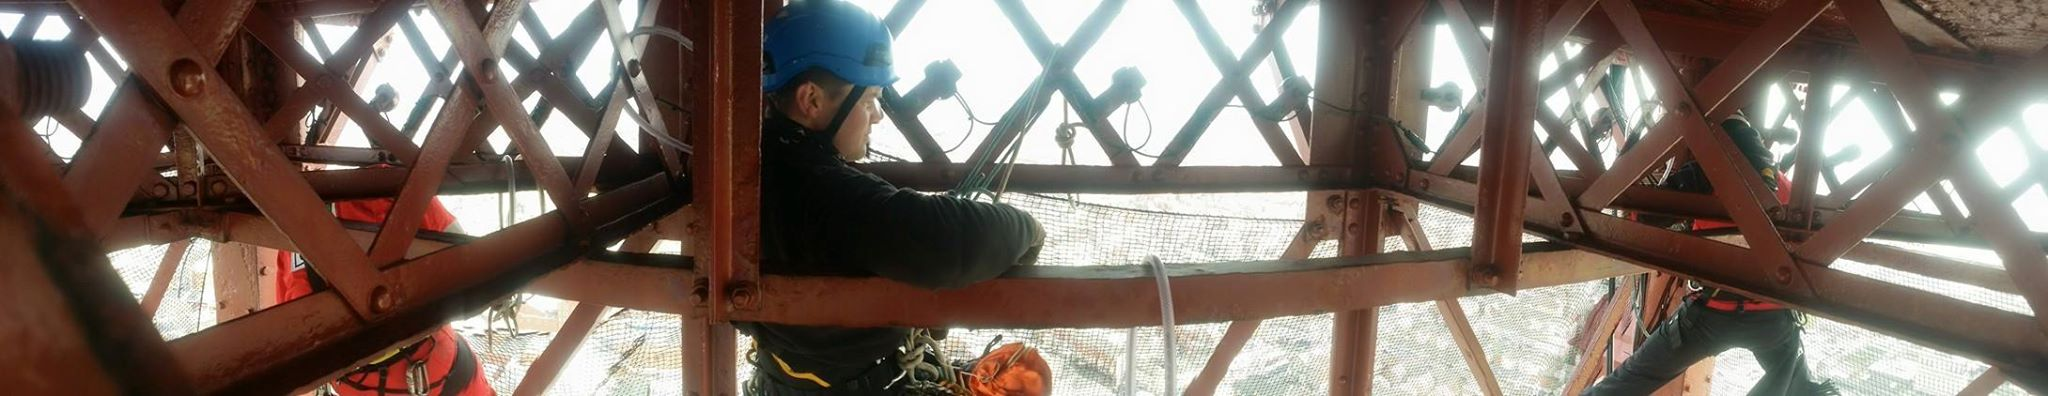 level 3 supervisor looks on as his level 1 rope access technicians set up rope access equipment